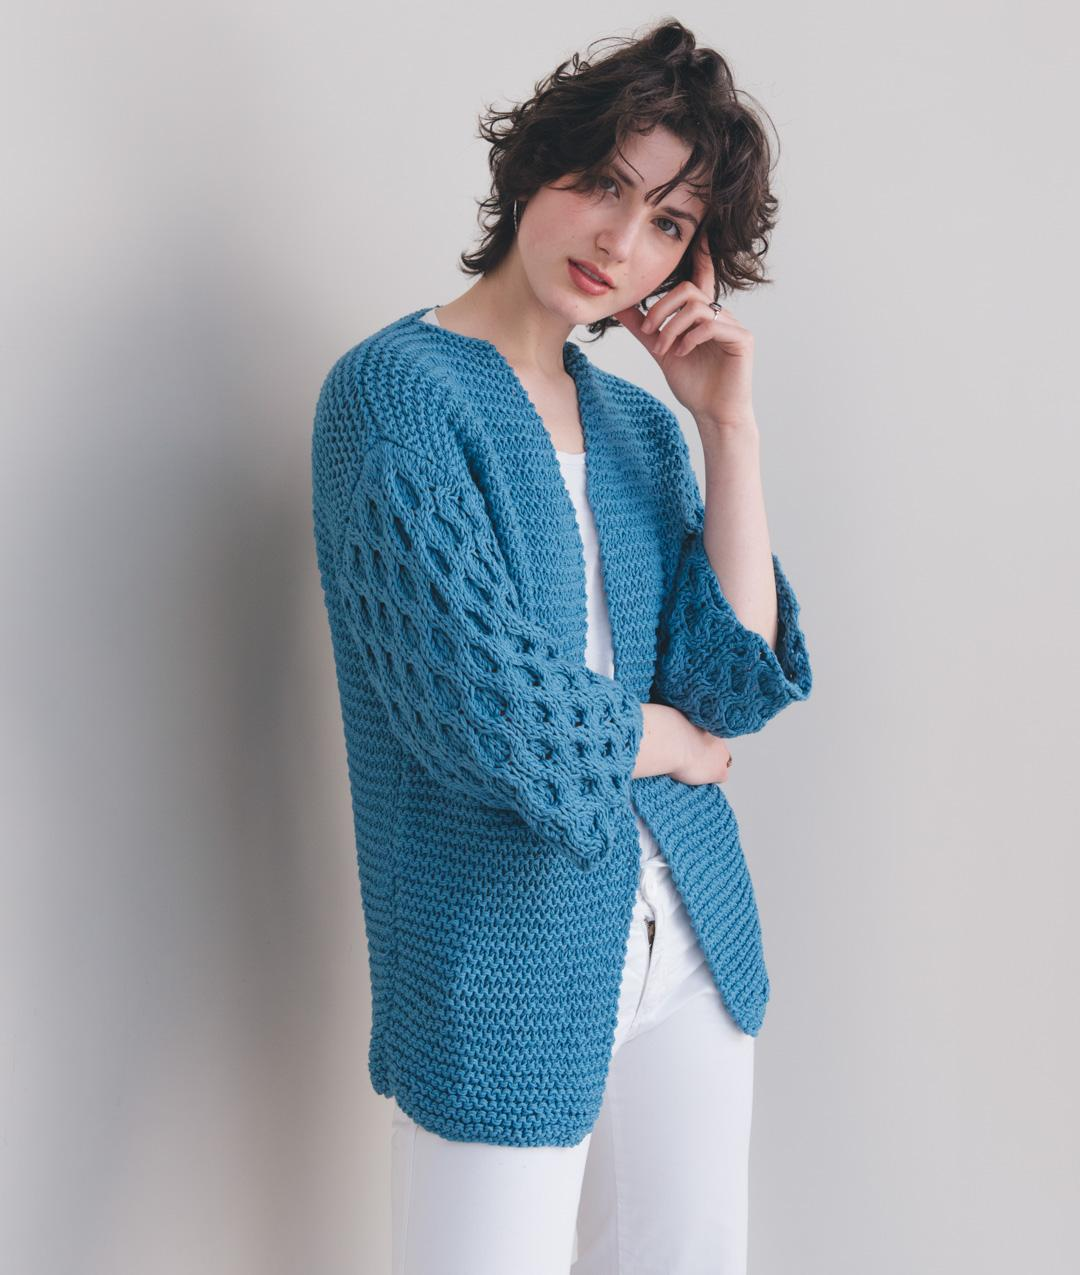 The Cardigans Collection - NEW IN - Iris Cardi - 1